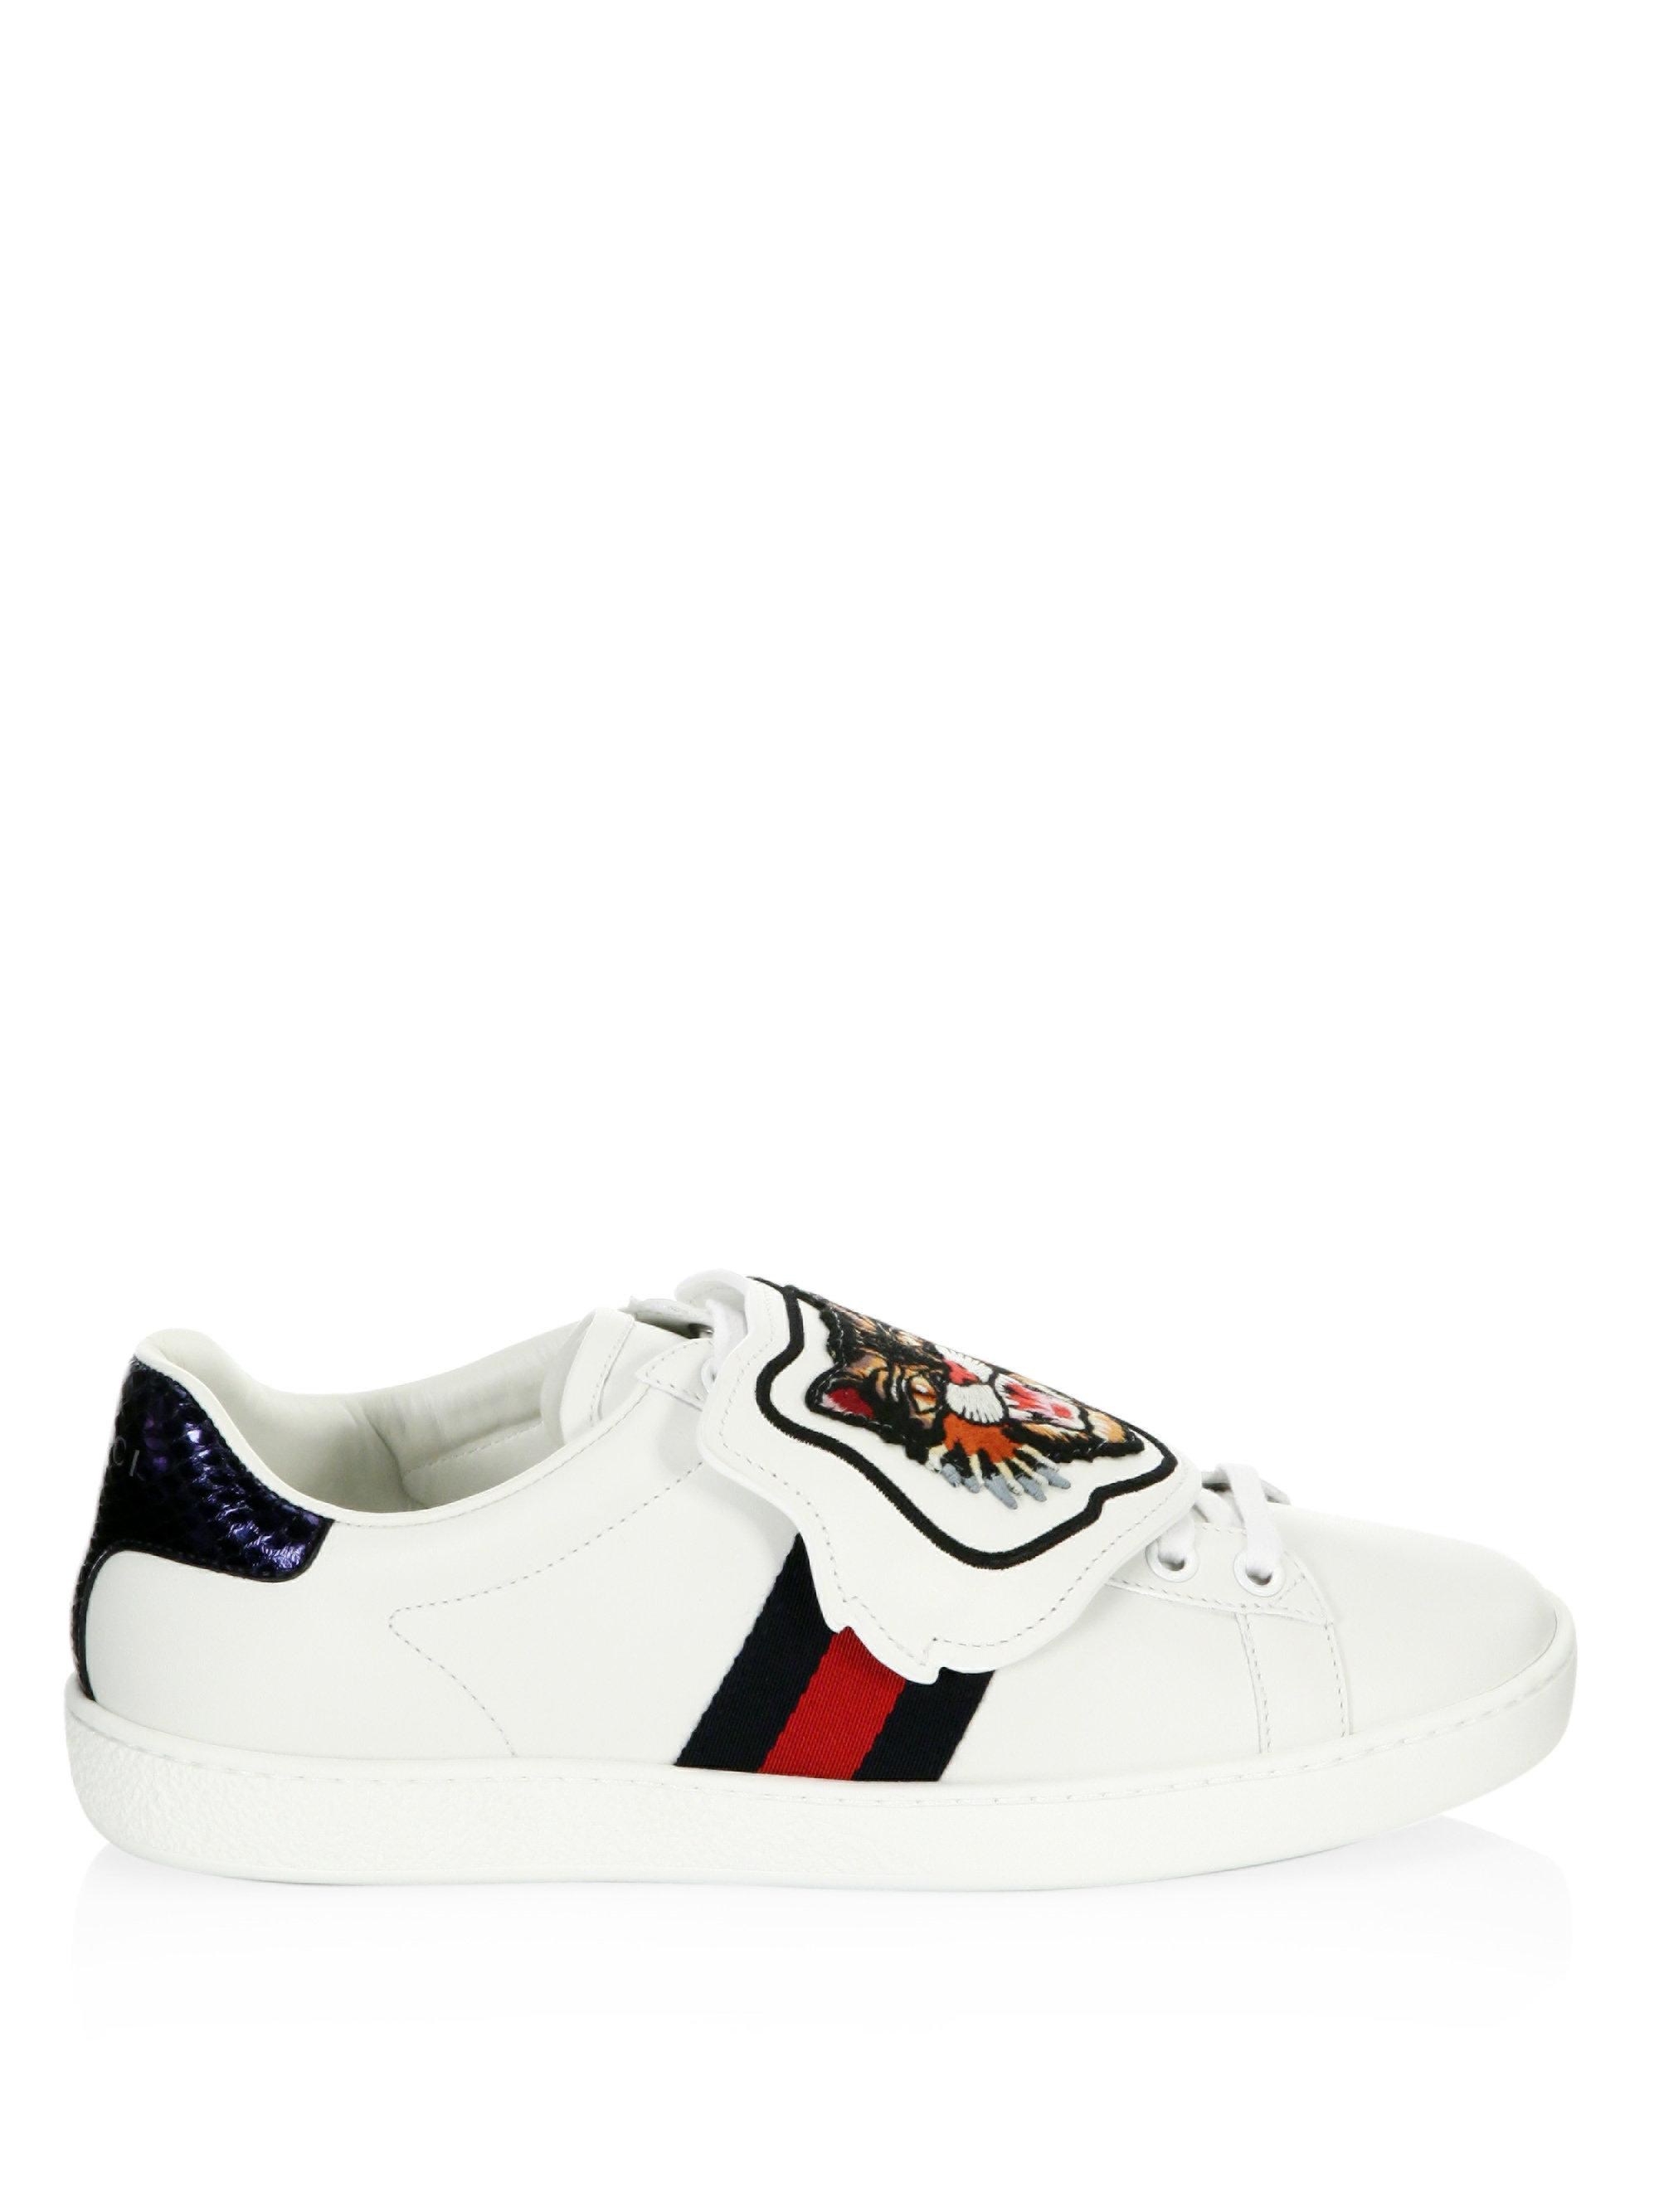 fdf8587aee6 Lyst - Gucci New Ace Lion Patch Sneakers in White